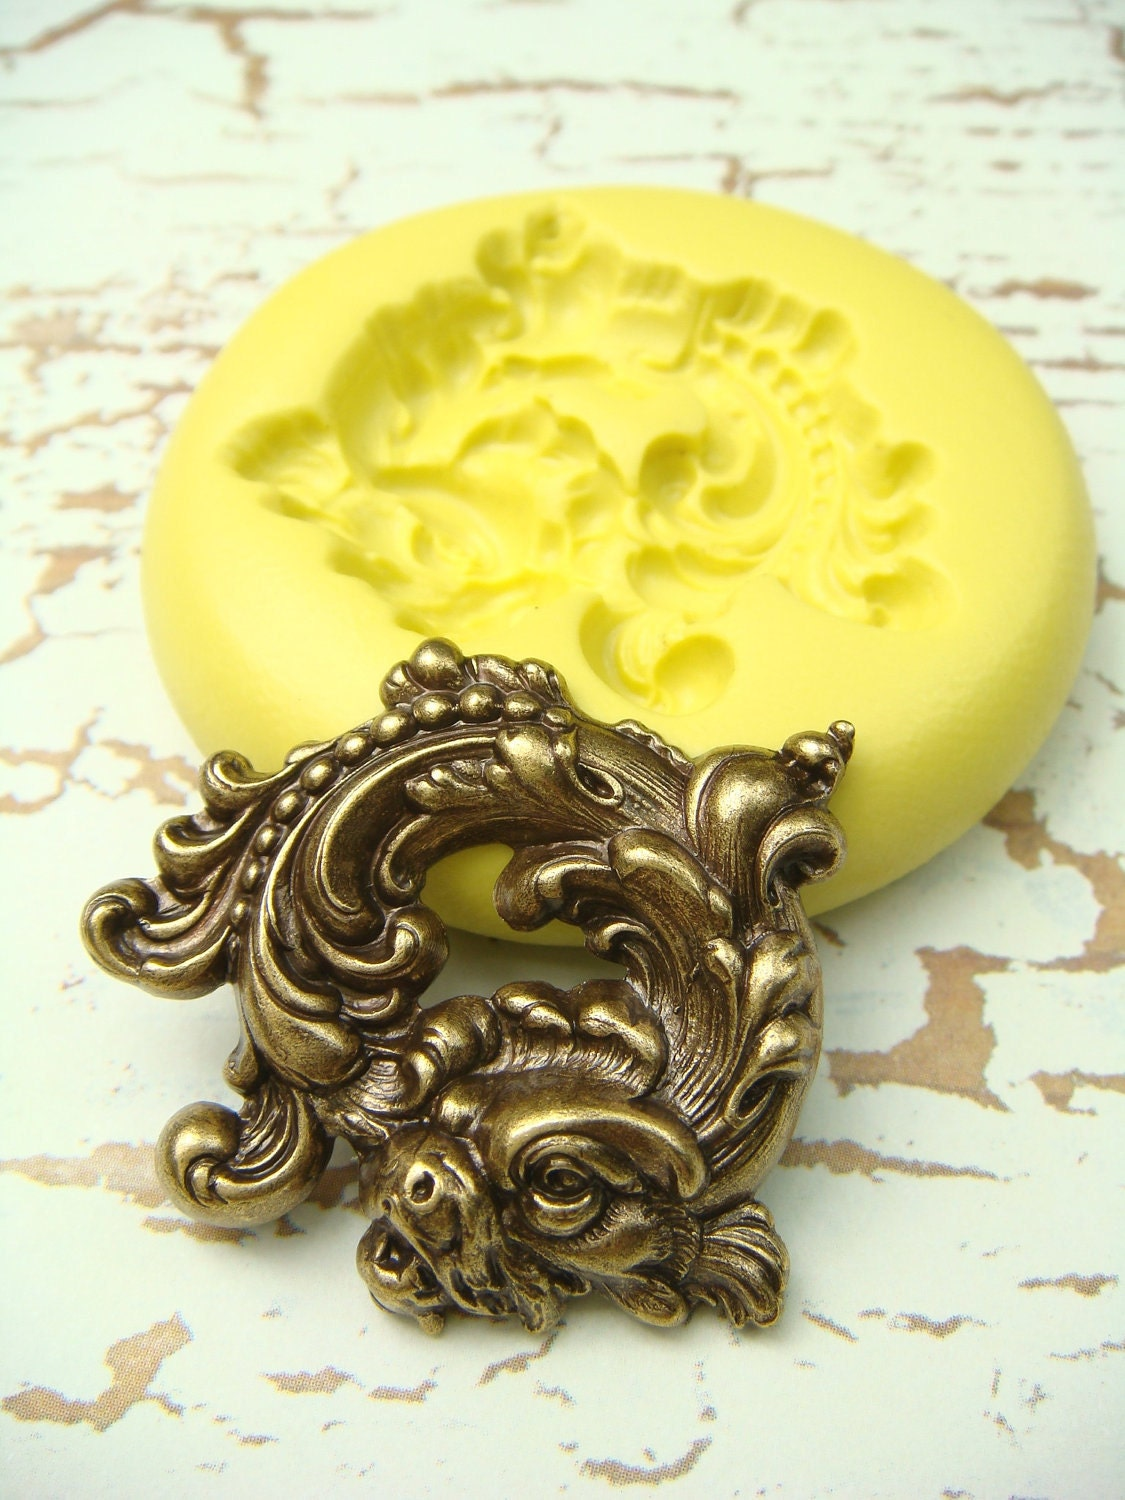 Koi fish flexible silicone mold push mold jewelry mold for Silicone fish molds